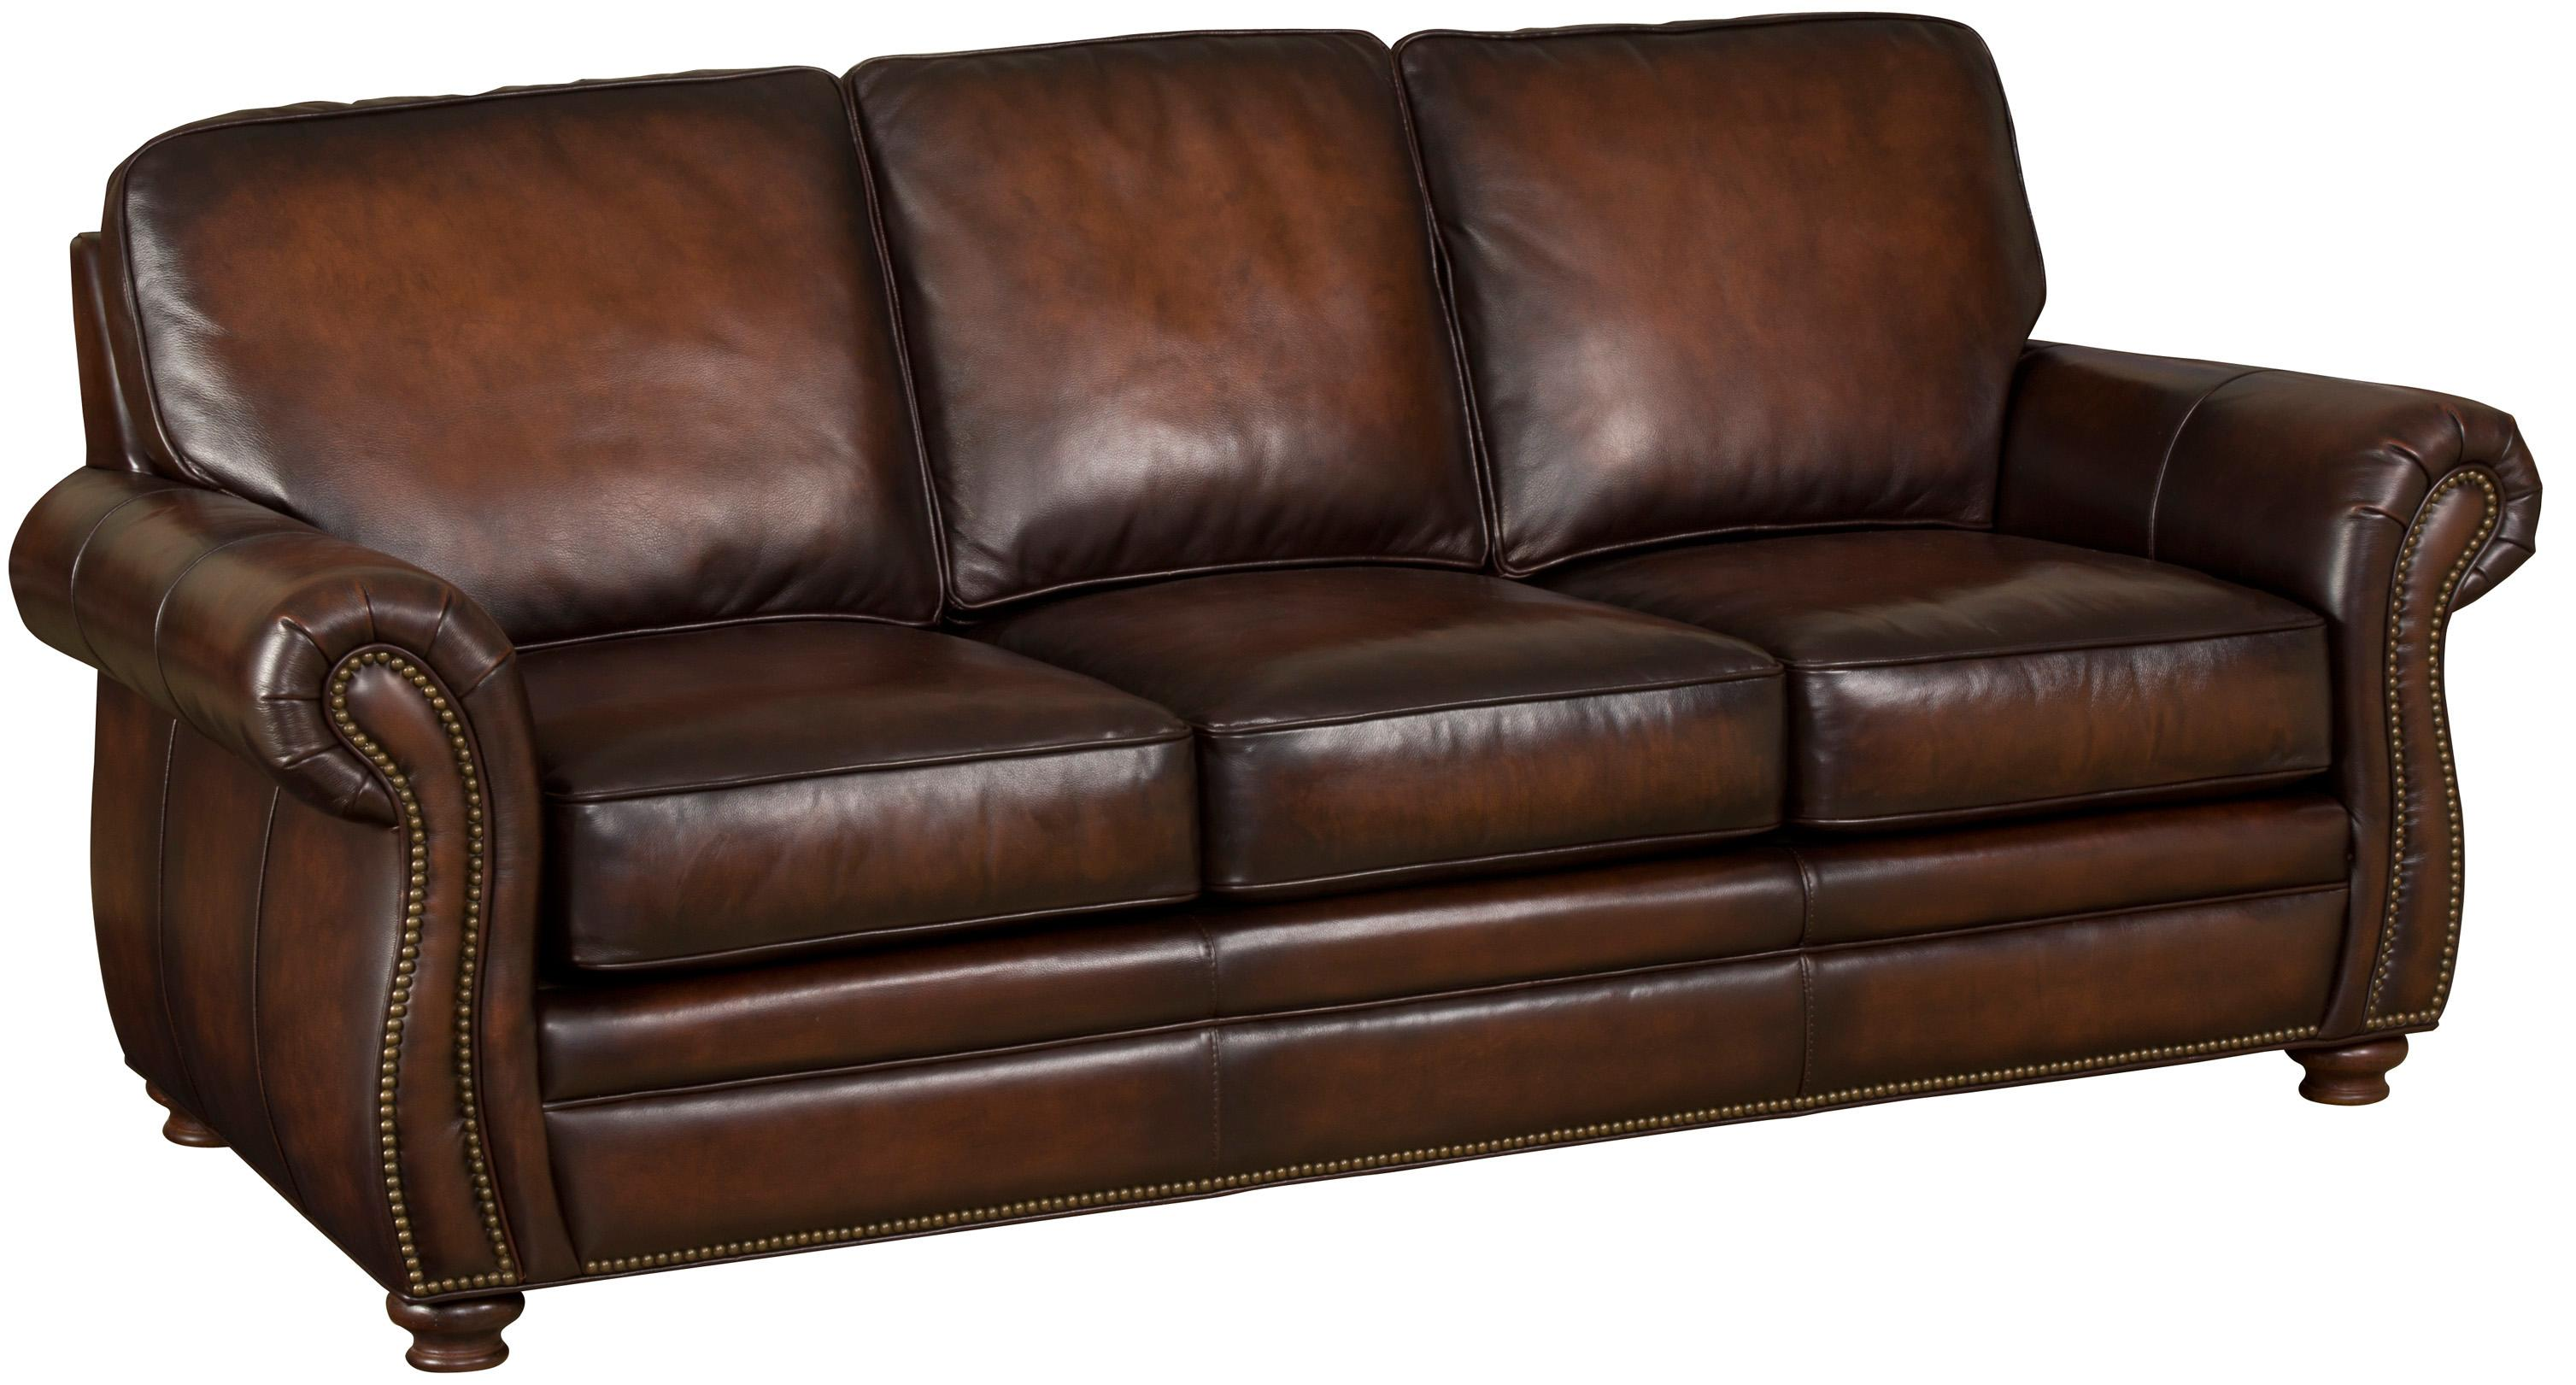 Brown Leather Sofa With Exposed Wood Bun Feet